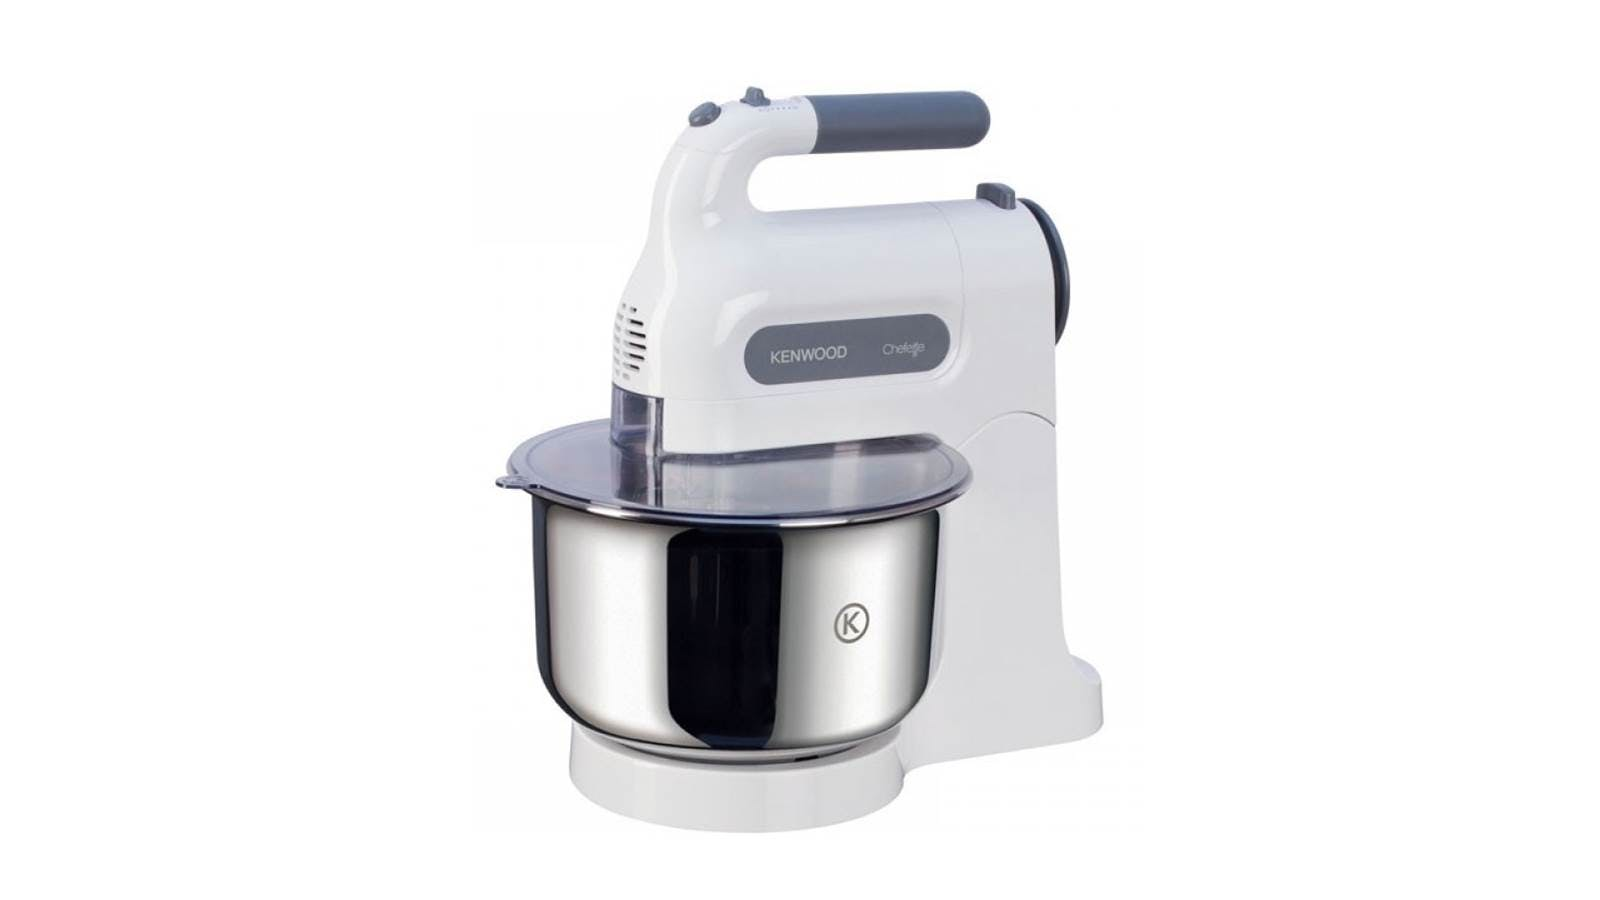 Mixers Food Processors Harvey Norman Malaysia Fan Mixer Grinder Speed Control By Tv Remote Kenwood Hm680 Chefette Hand